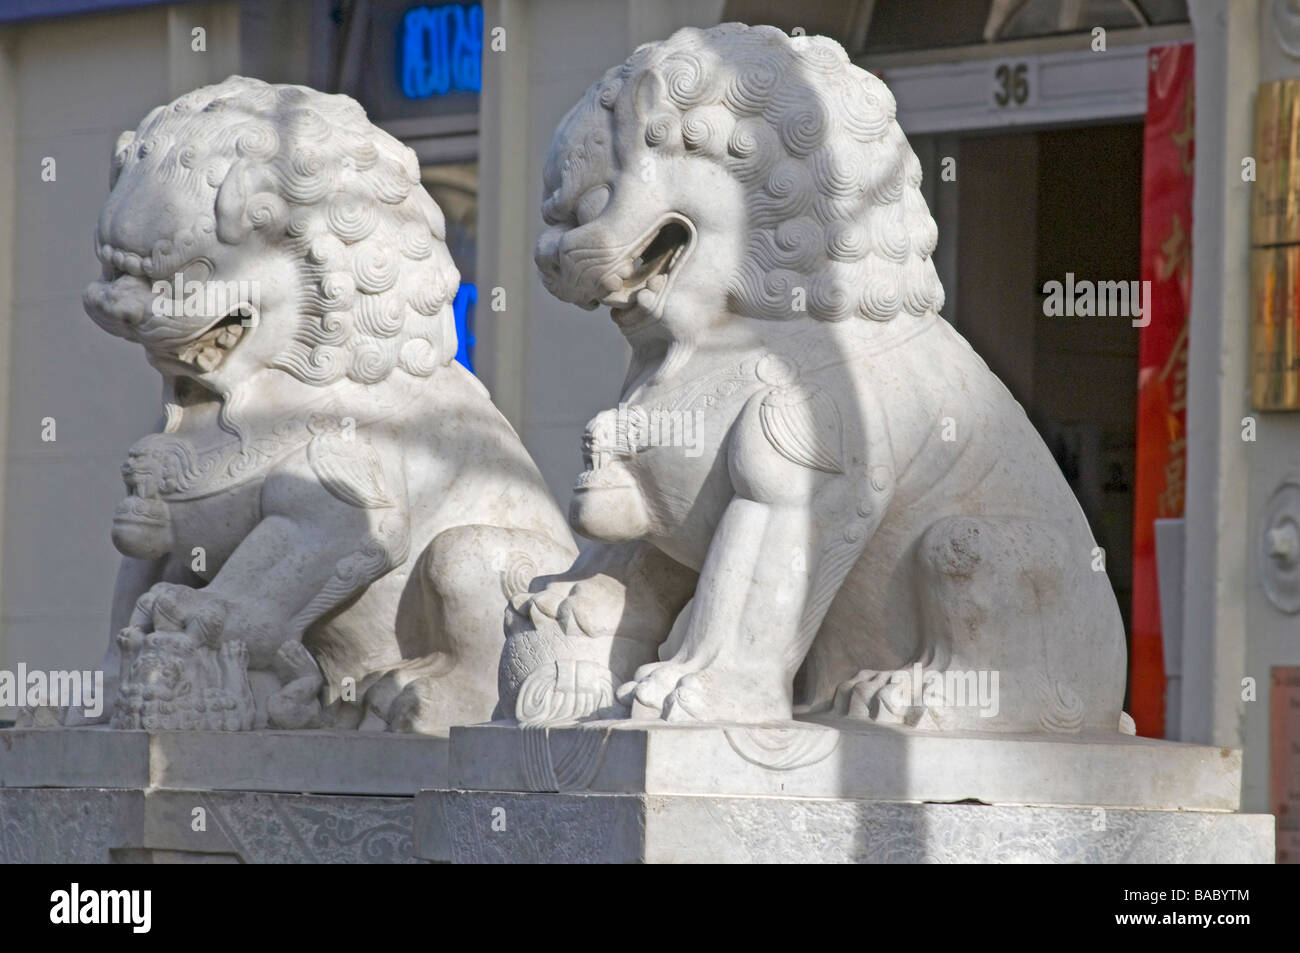 Stone dragon Statues in London's China Town, London, UK - Stock Image